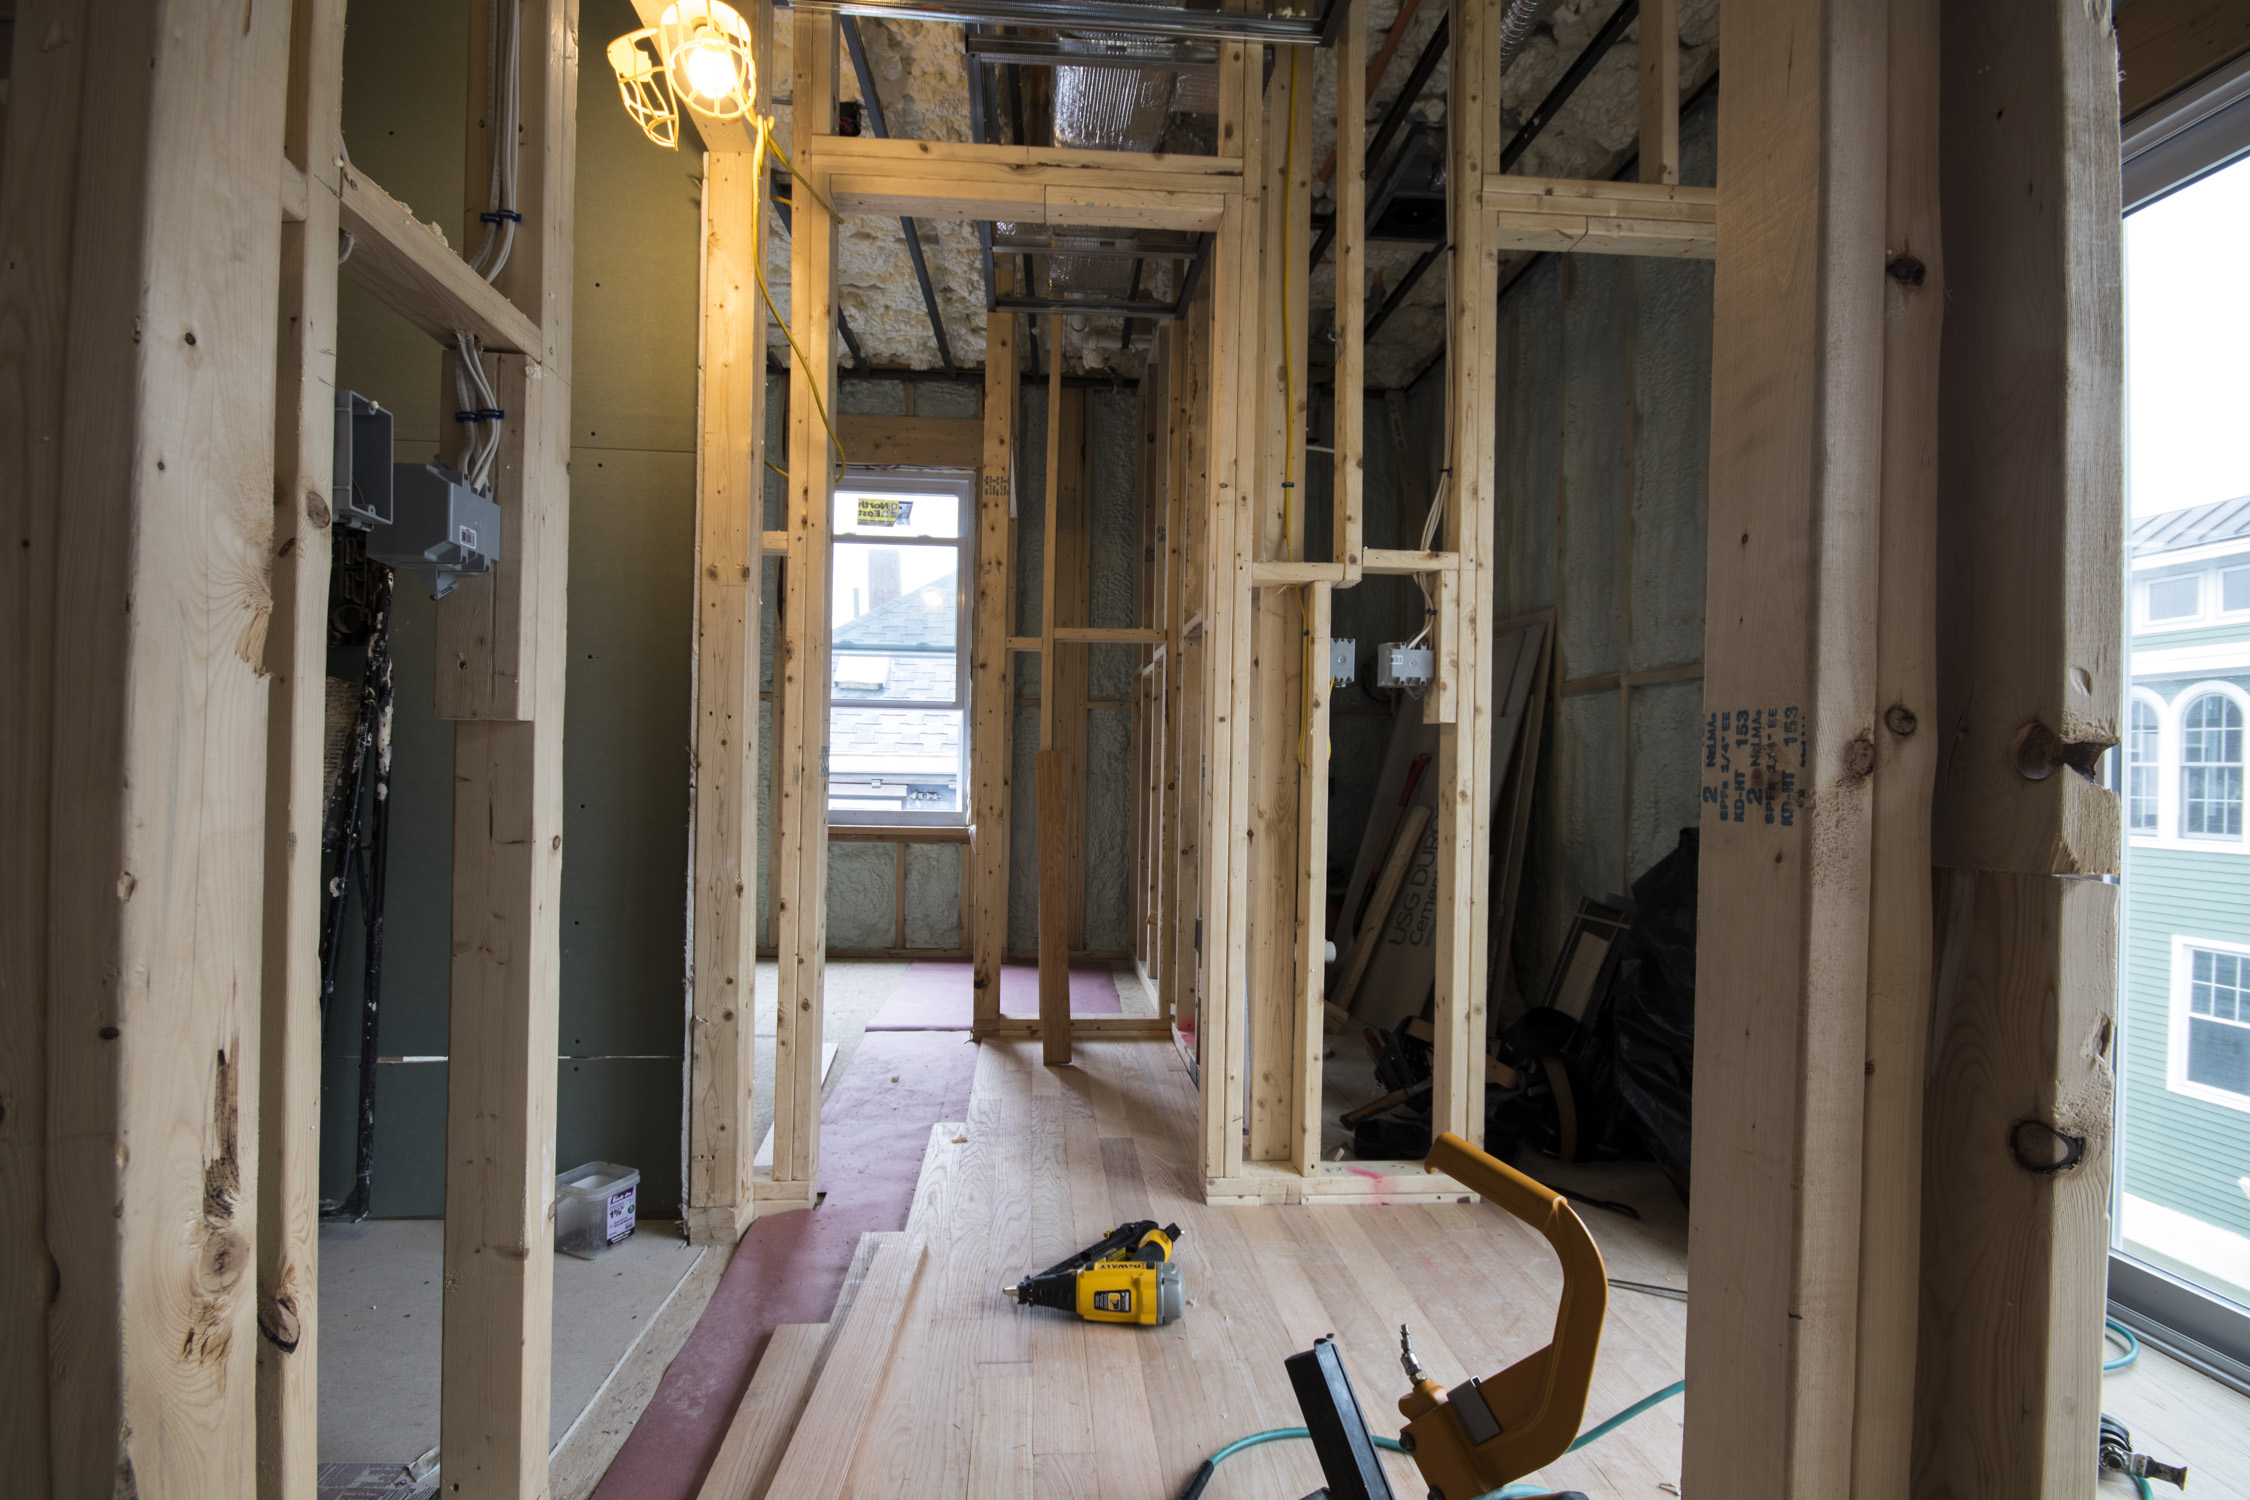 83 parker street home renovation boston general contractor_45